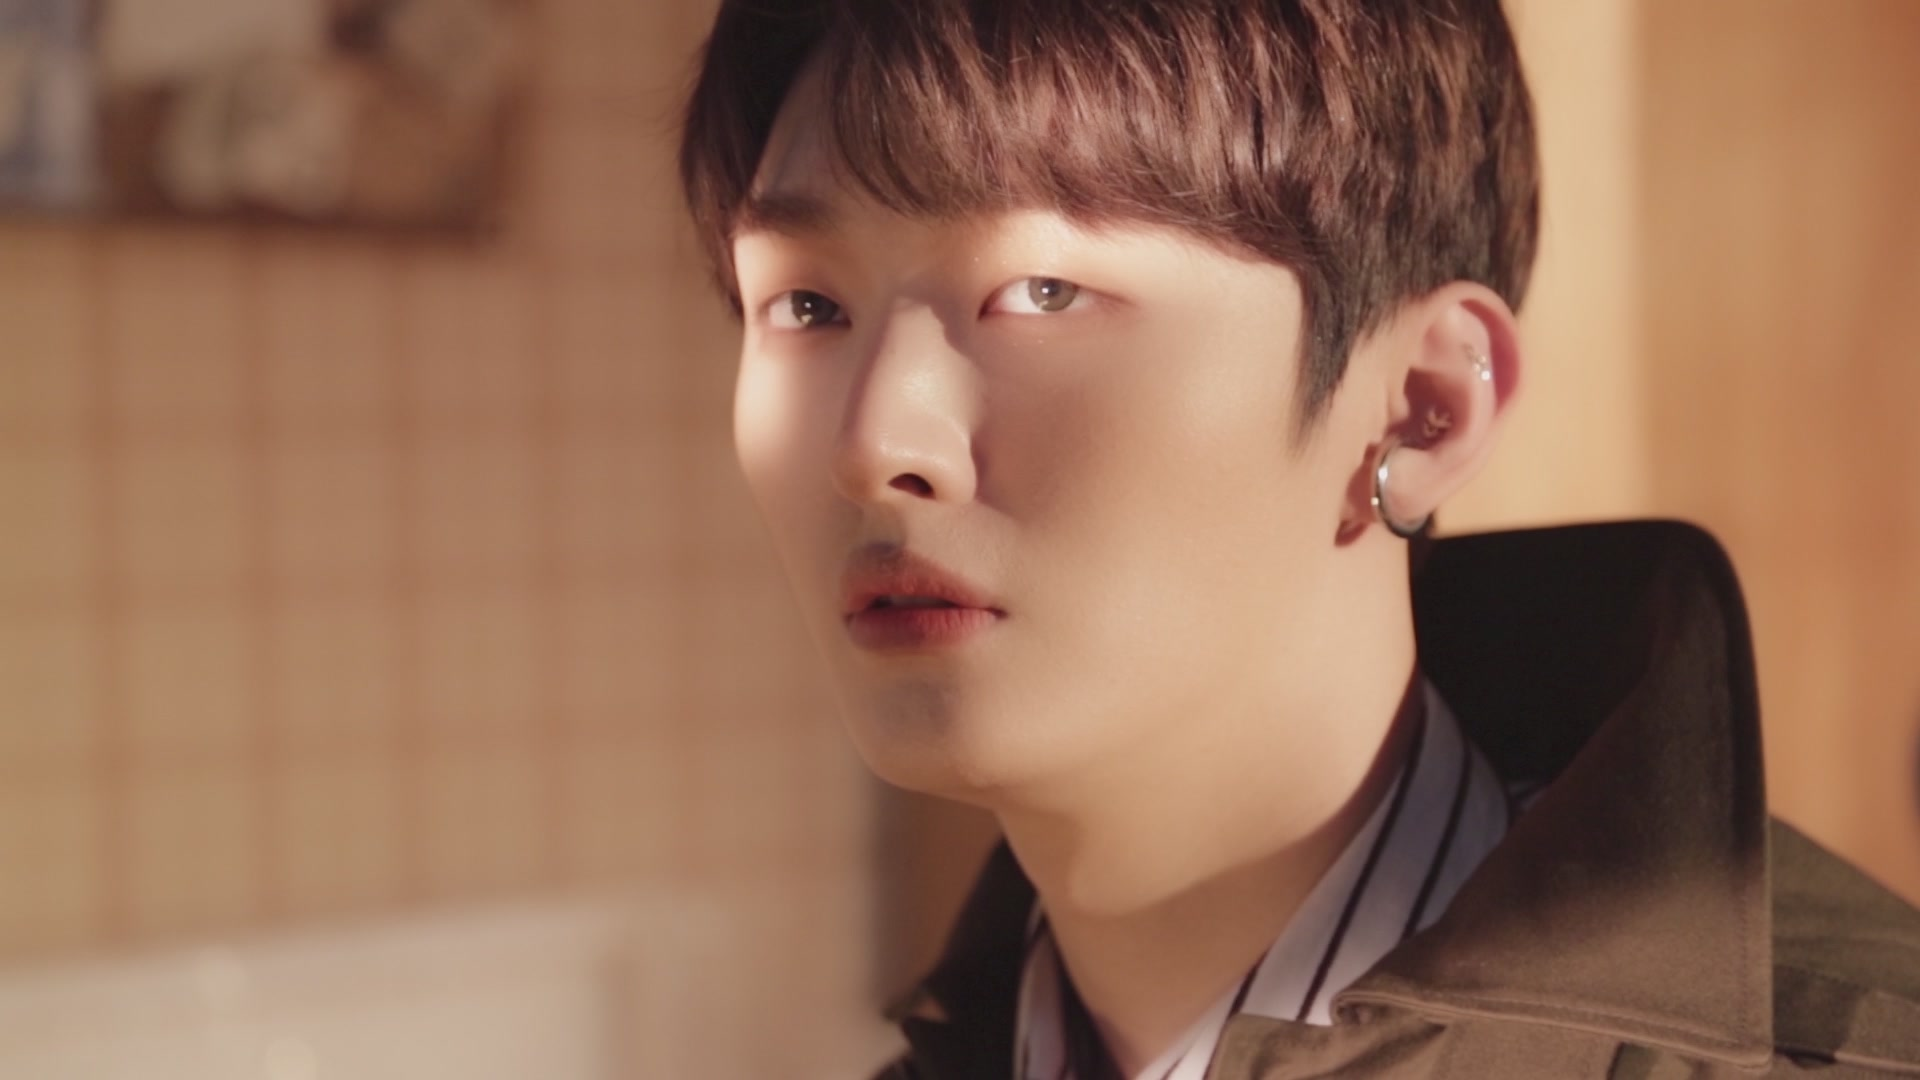 윤지성 (Yoon Jisung) - 'Aside' Jacket Making Film